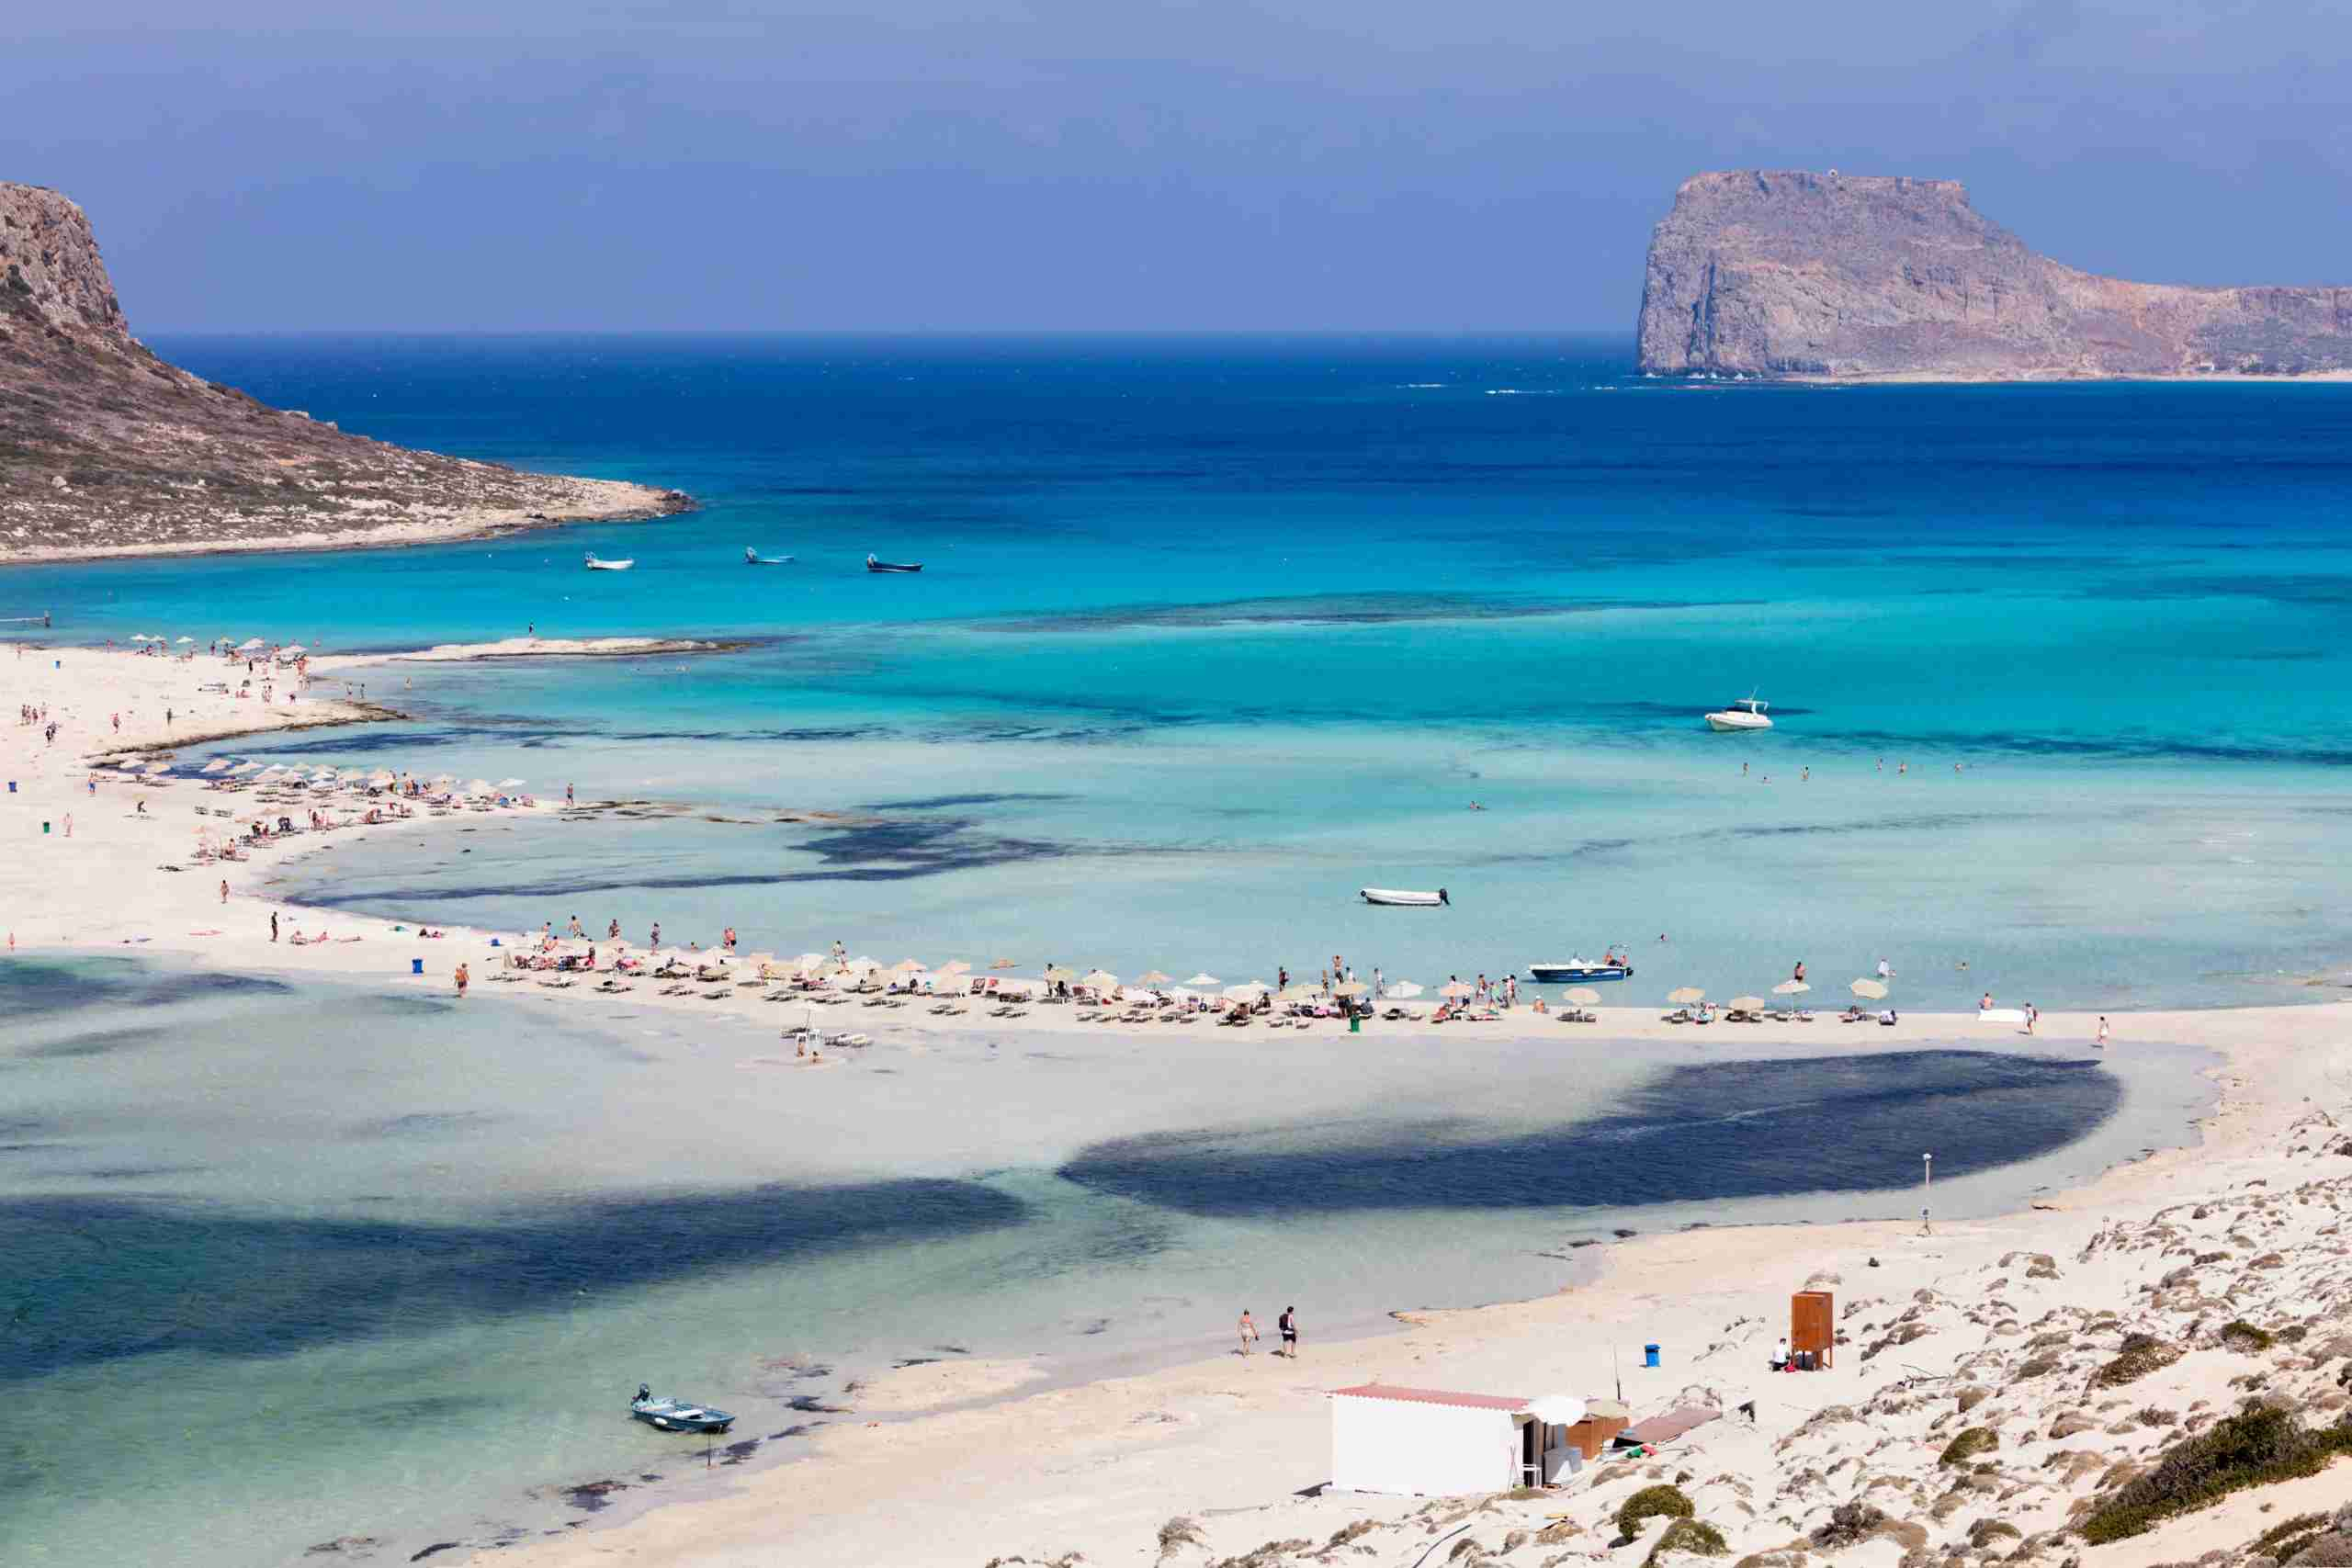 Lagoon of Balos, Crete, Greece (Photo by Evgeni Dinev/Getty Images)